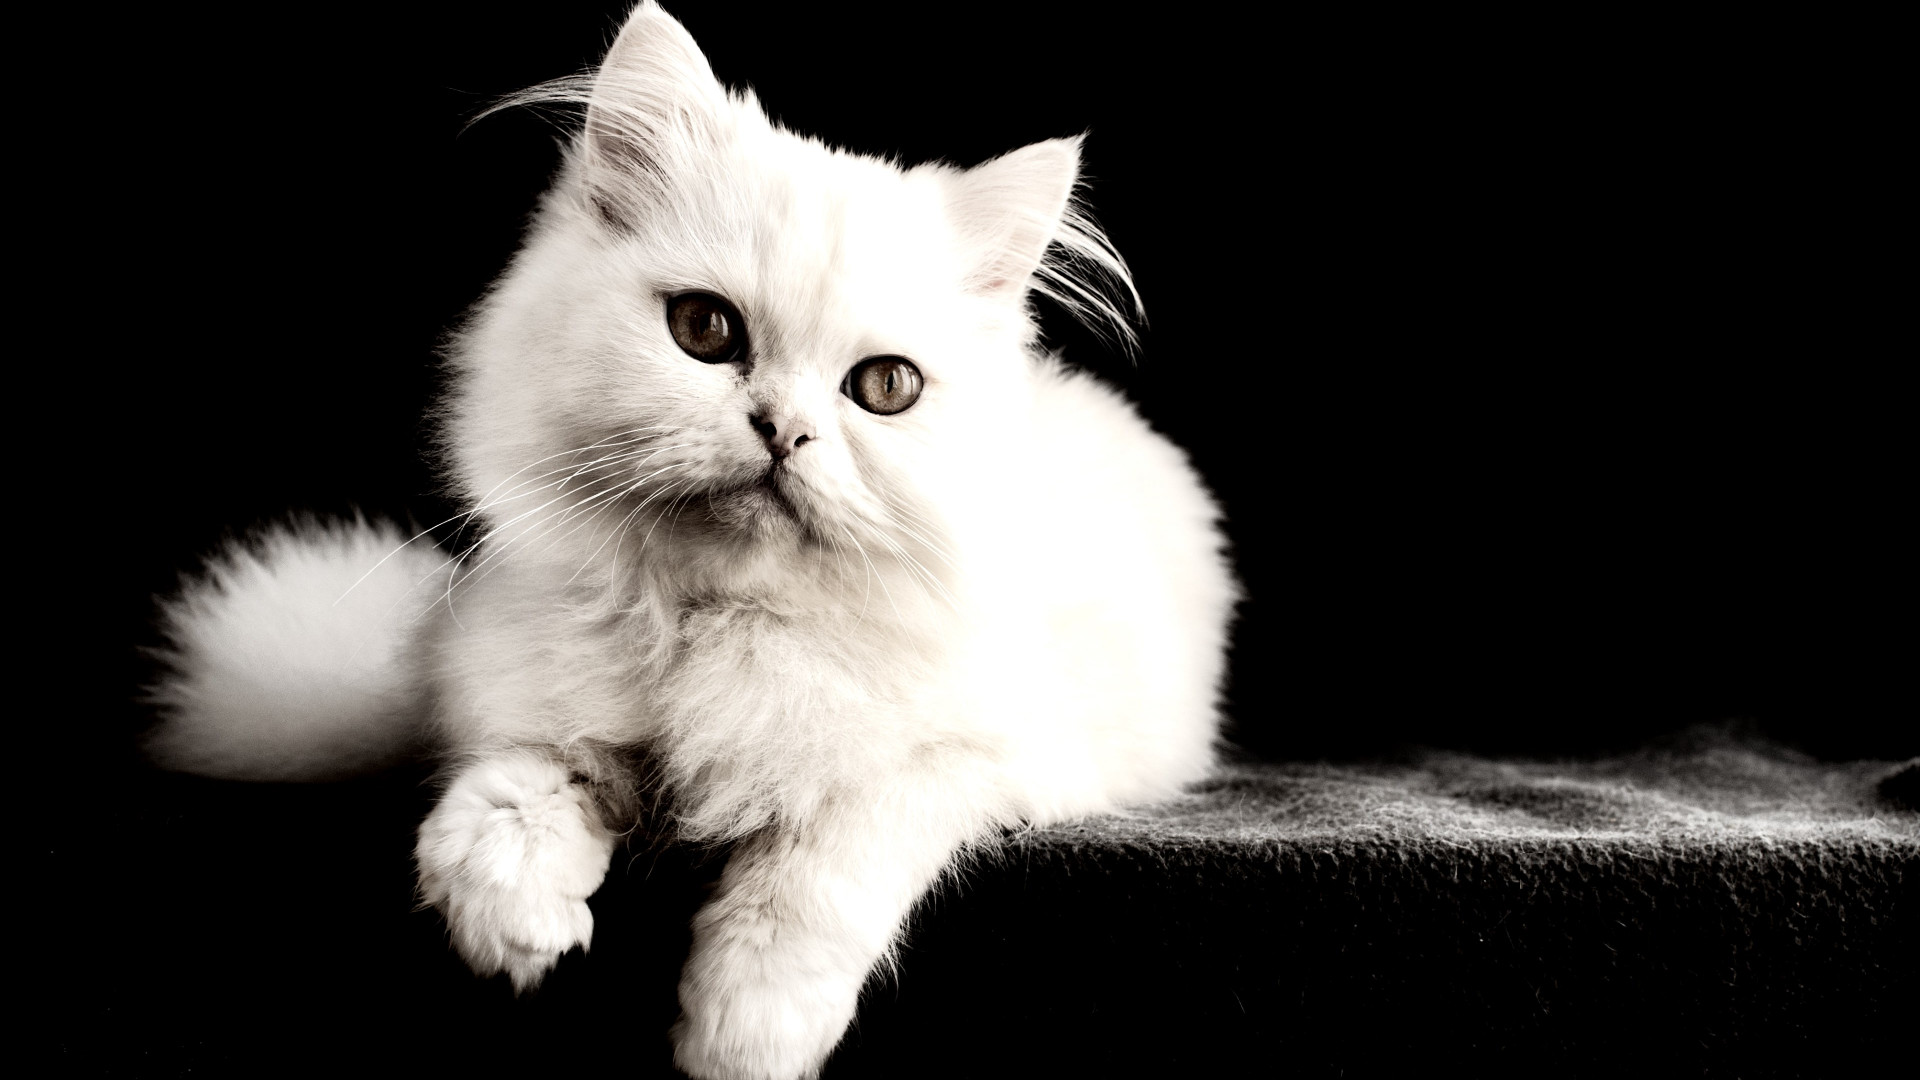 White cat wallpaper 1920x1080